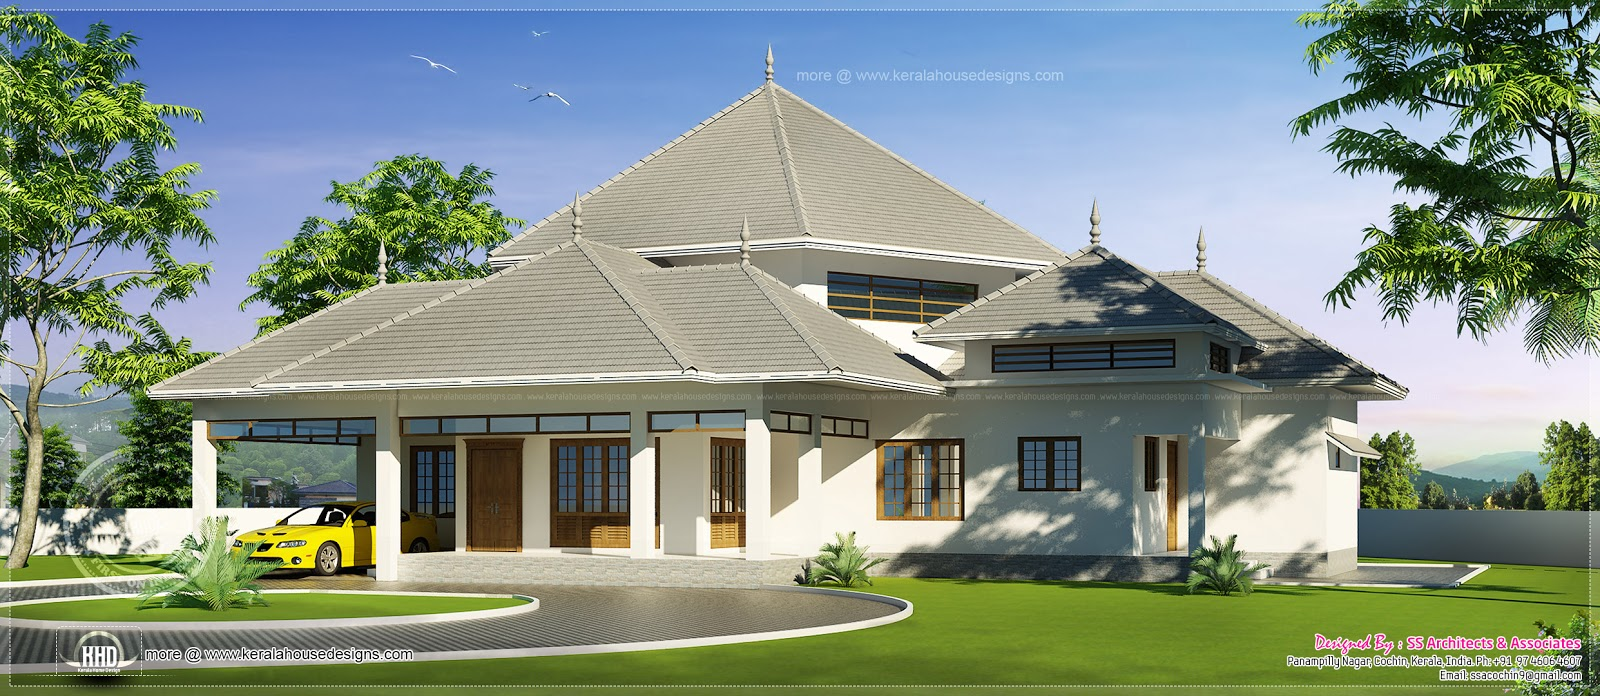 Kerala style modern roof house in 2600 kerala for Kerala style single storey house plans